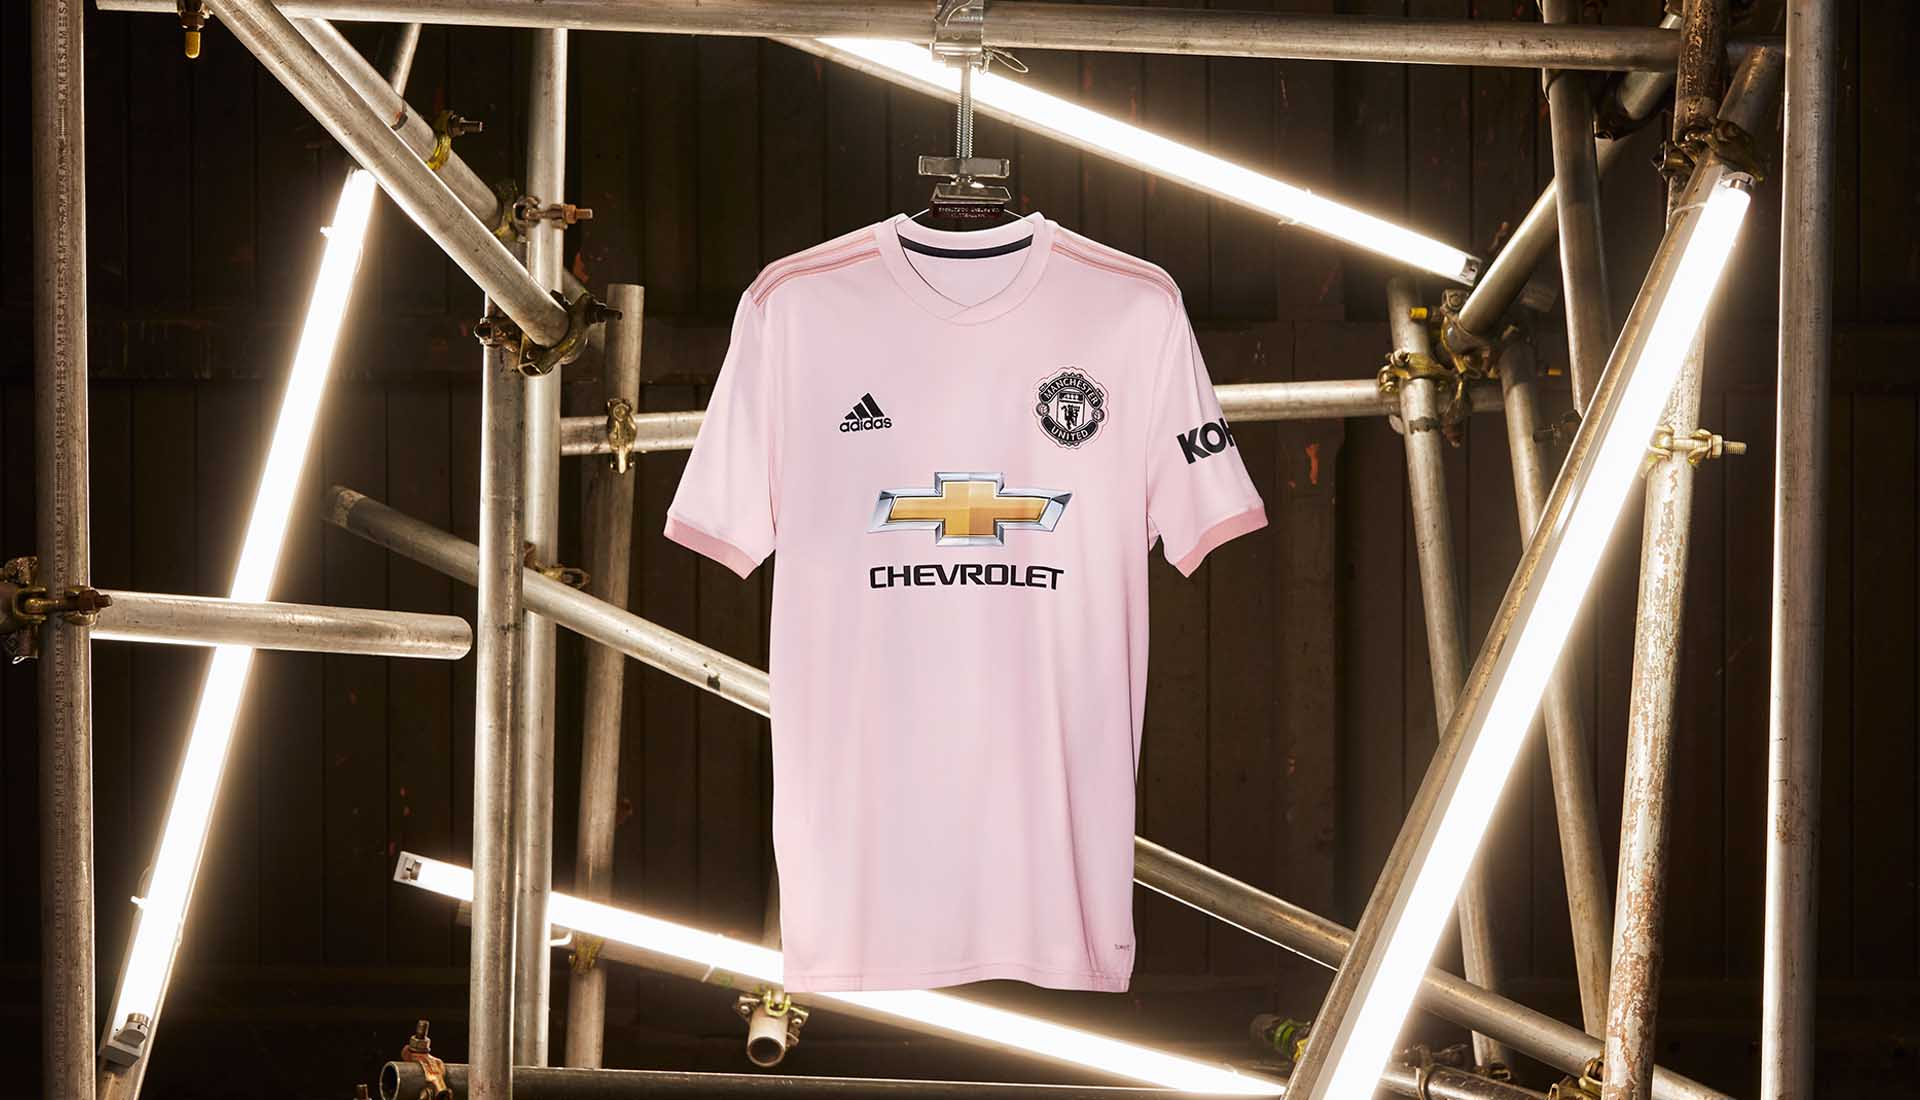 8b73345b5e6 adidas Launch The Manchester United 18 19 Pink Away Kit - SoccerBible